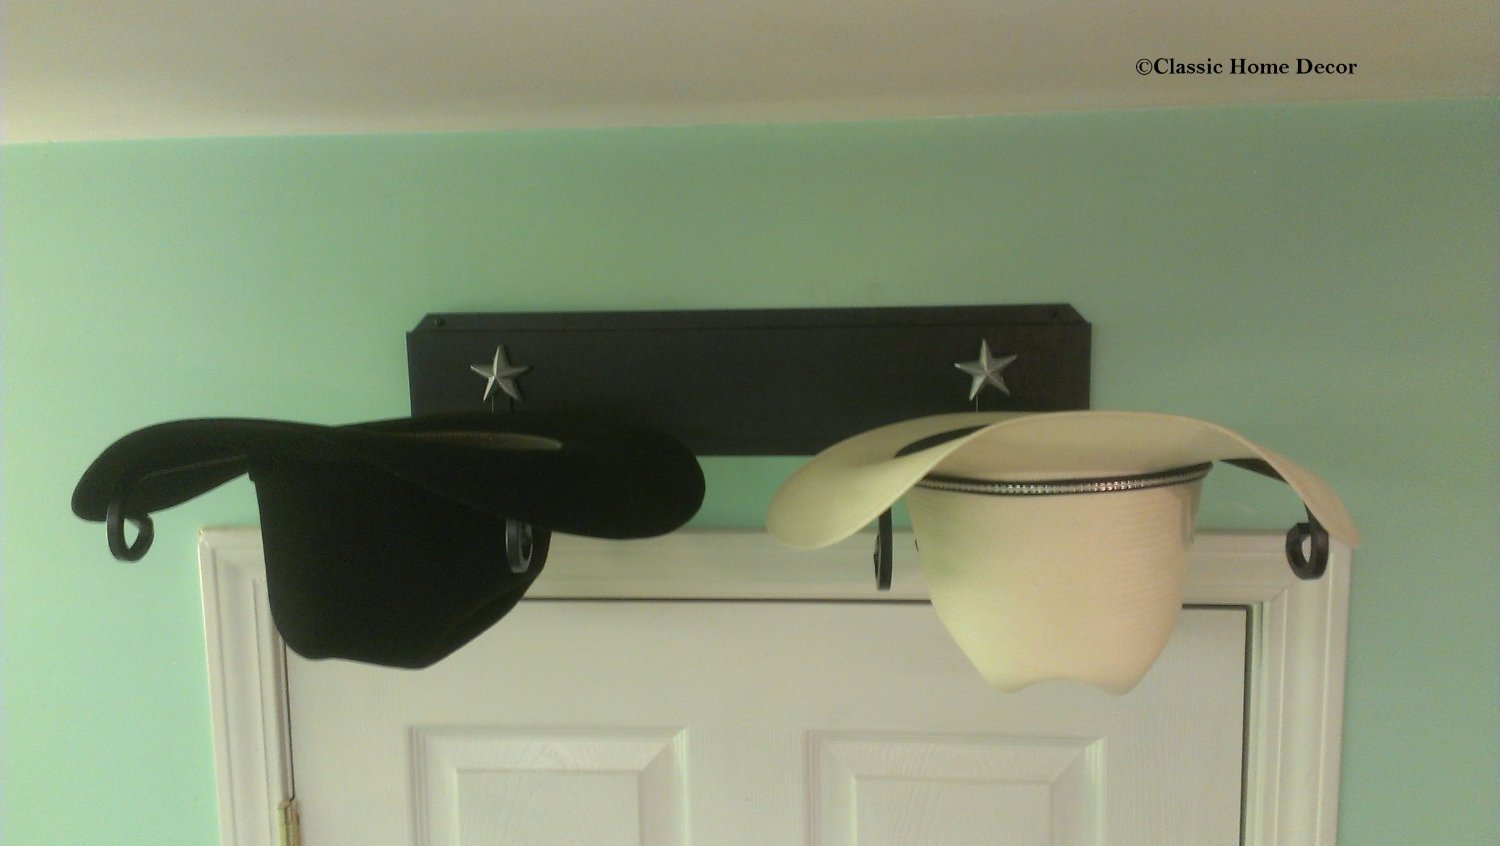 Mark Christopher Collection Cowboy Hat Holder STAR BLK American Made Classic Home Decor 666 STAR BLK